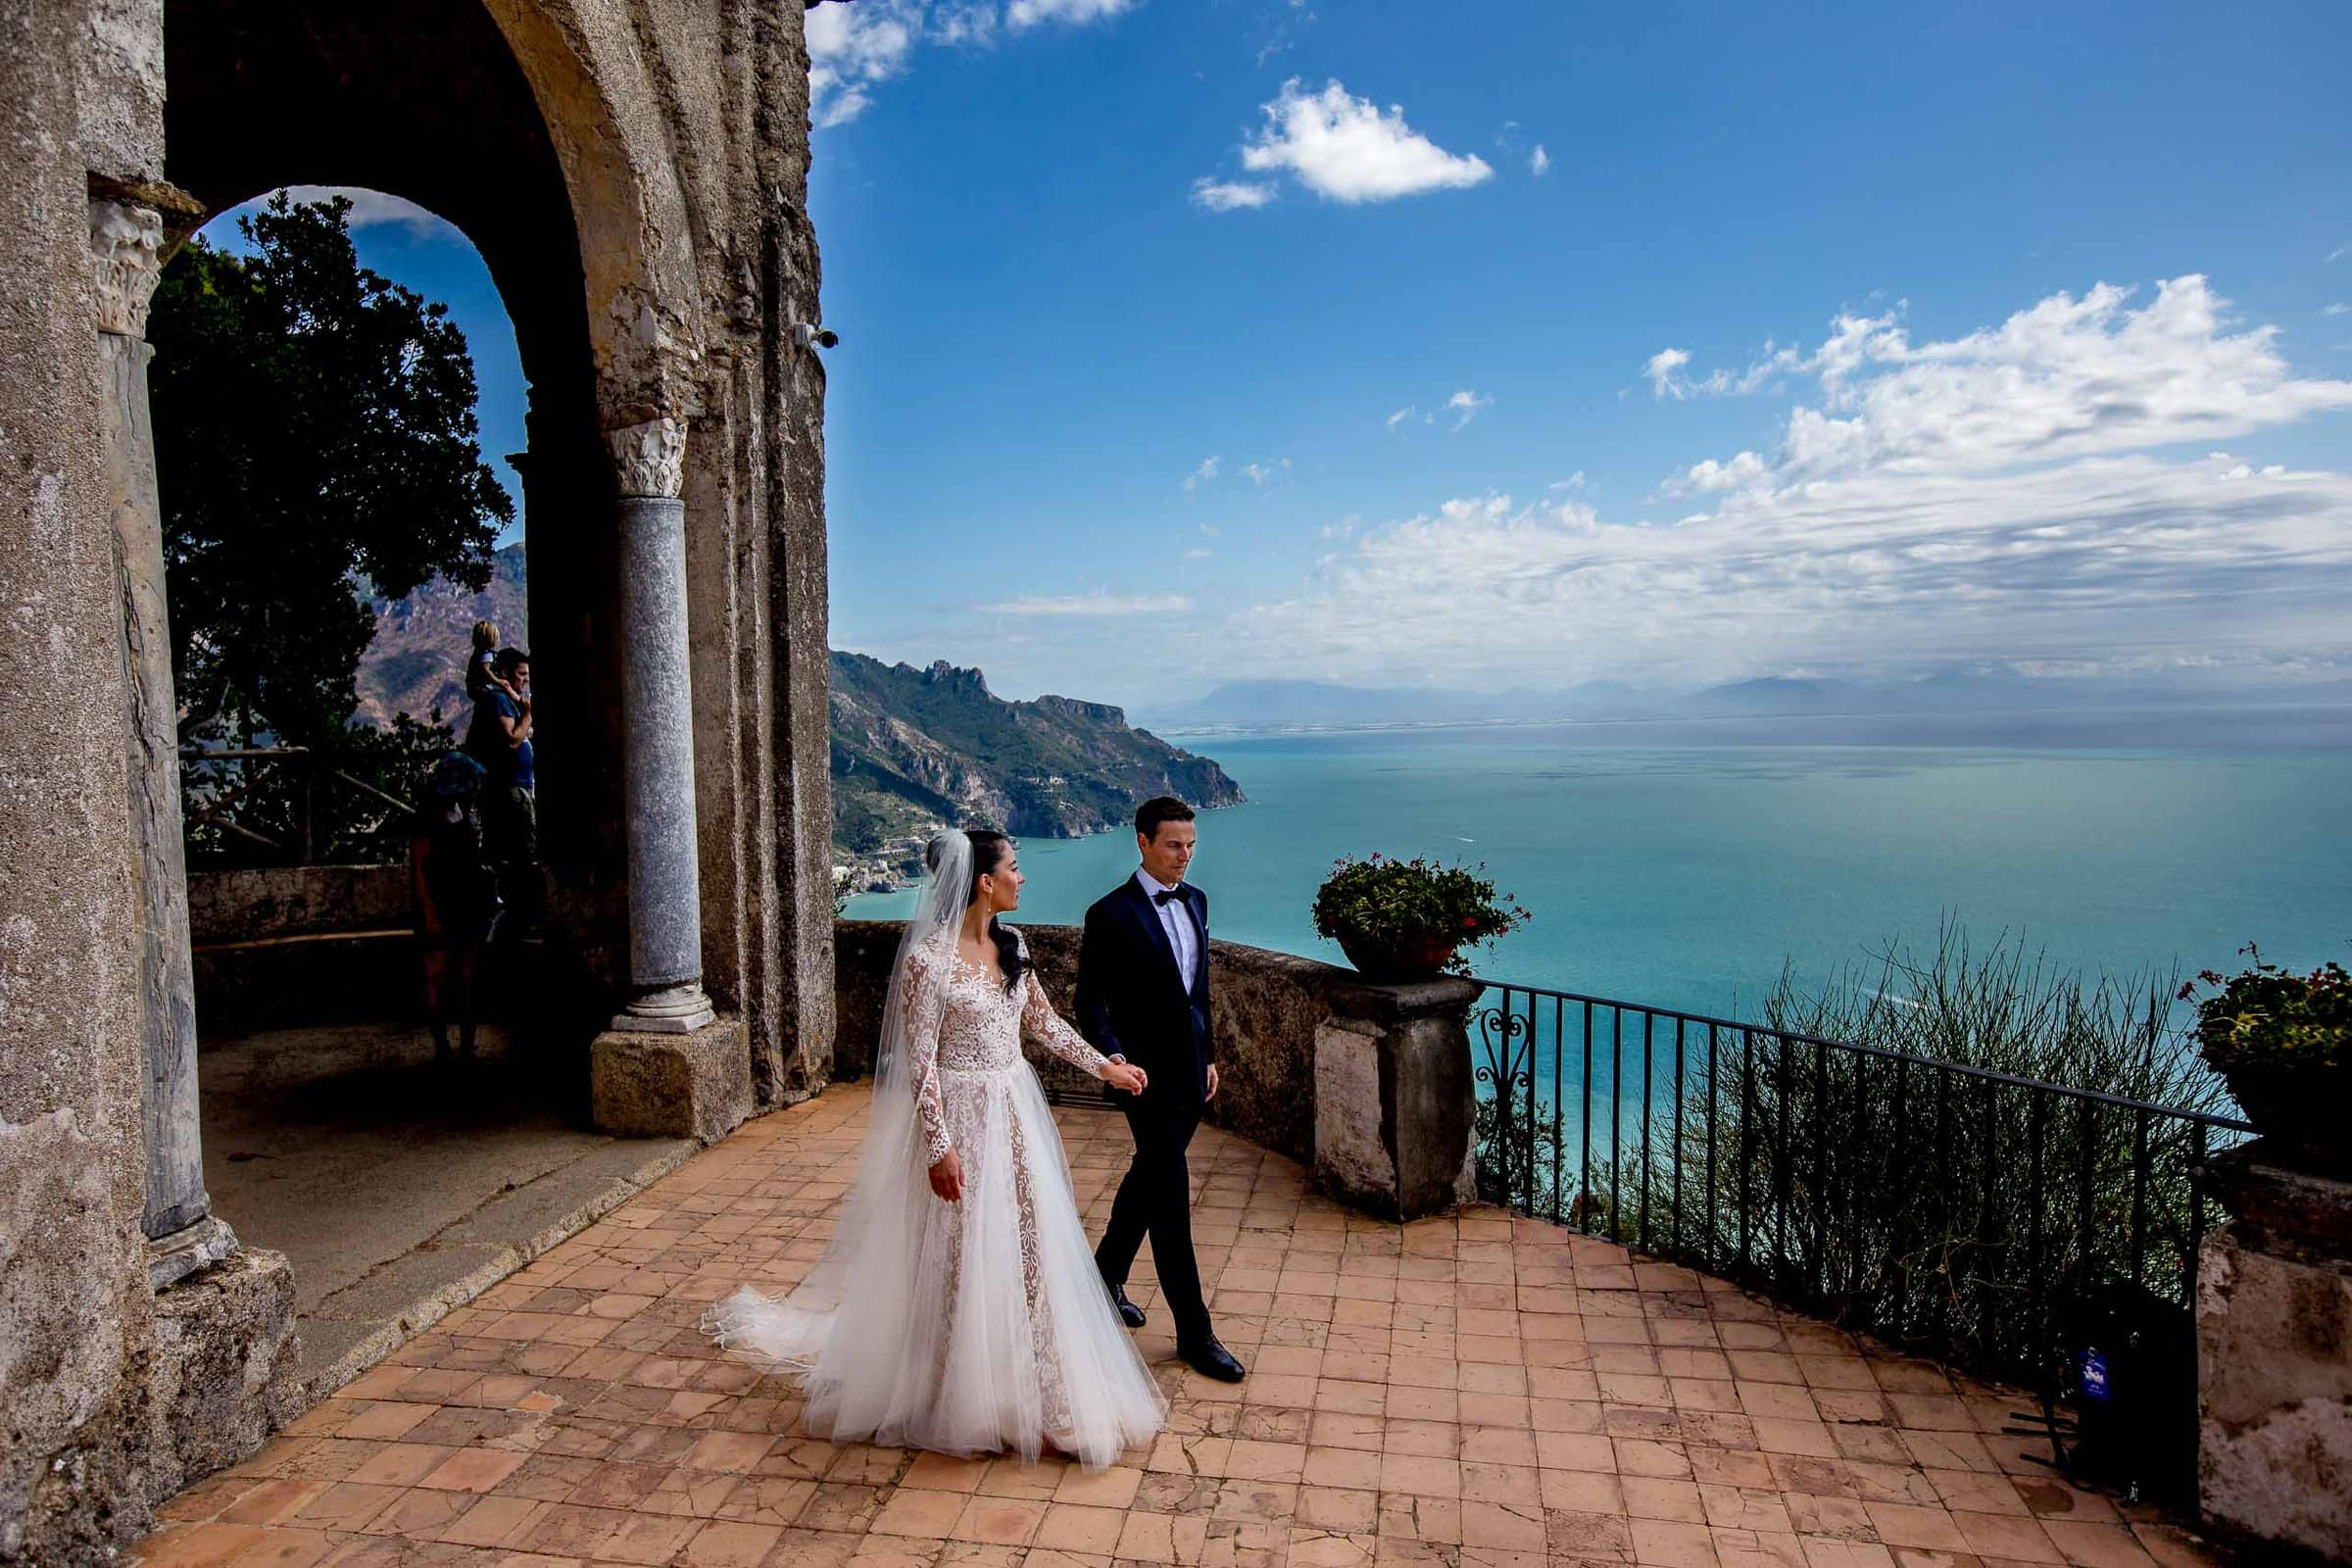 Gorgeous bride and groom photo at Villa Cimbrone for their Ravello wedding elopement along the Amafi coast in Italy.